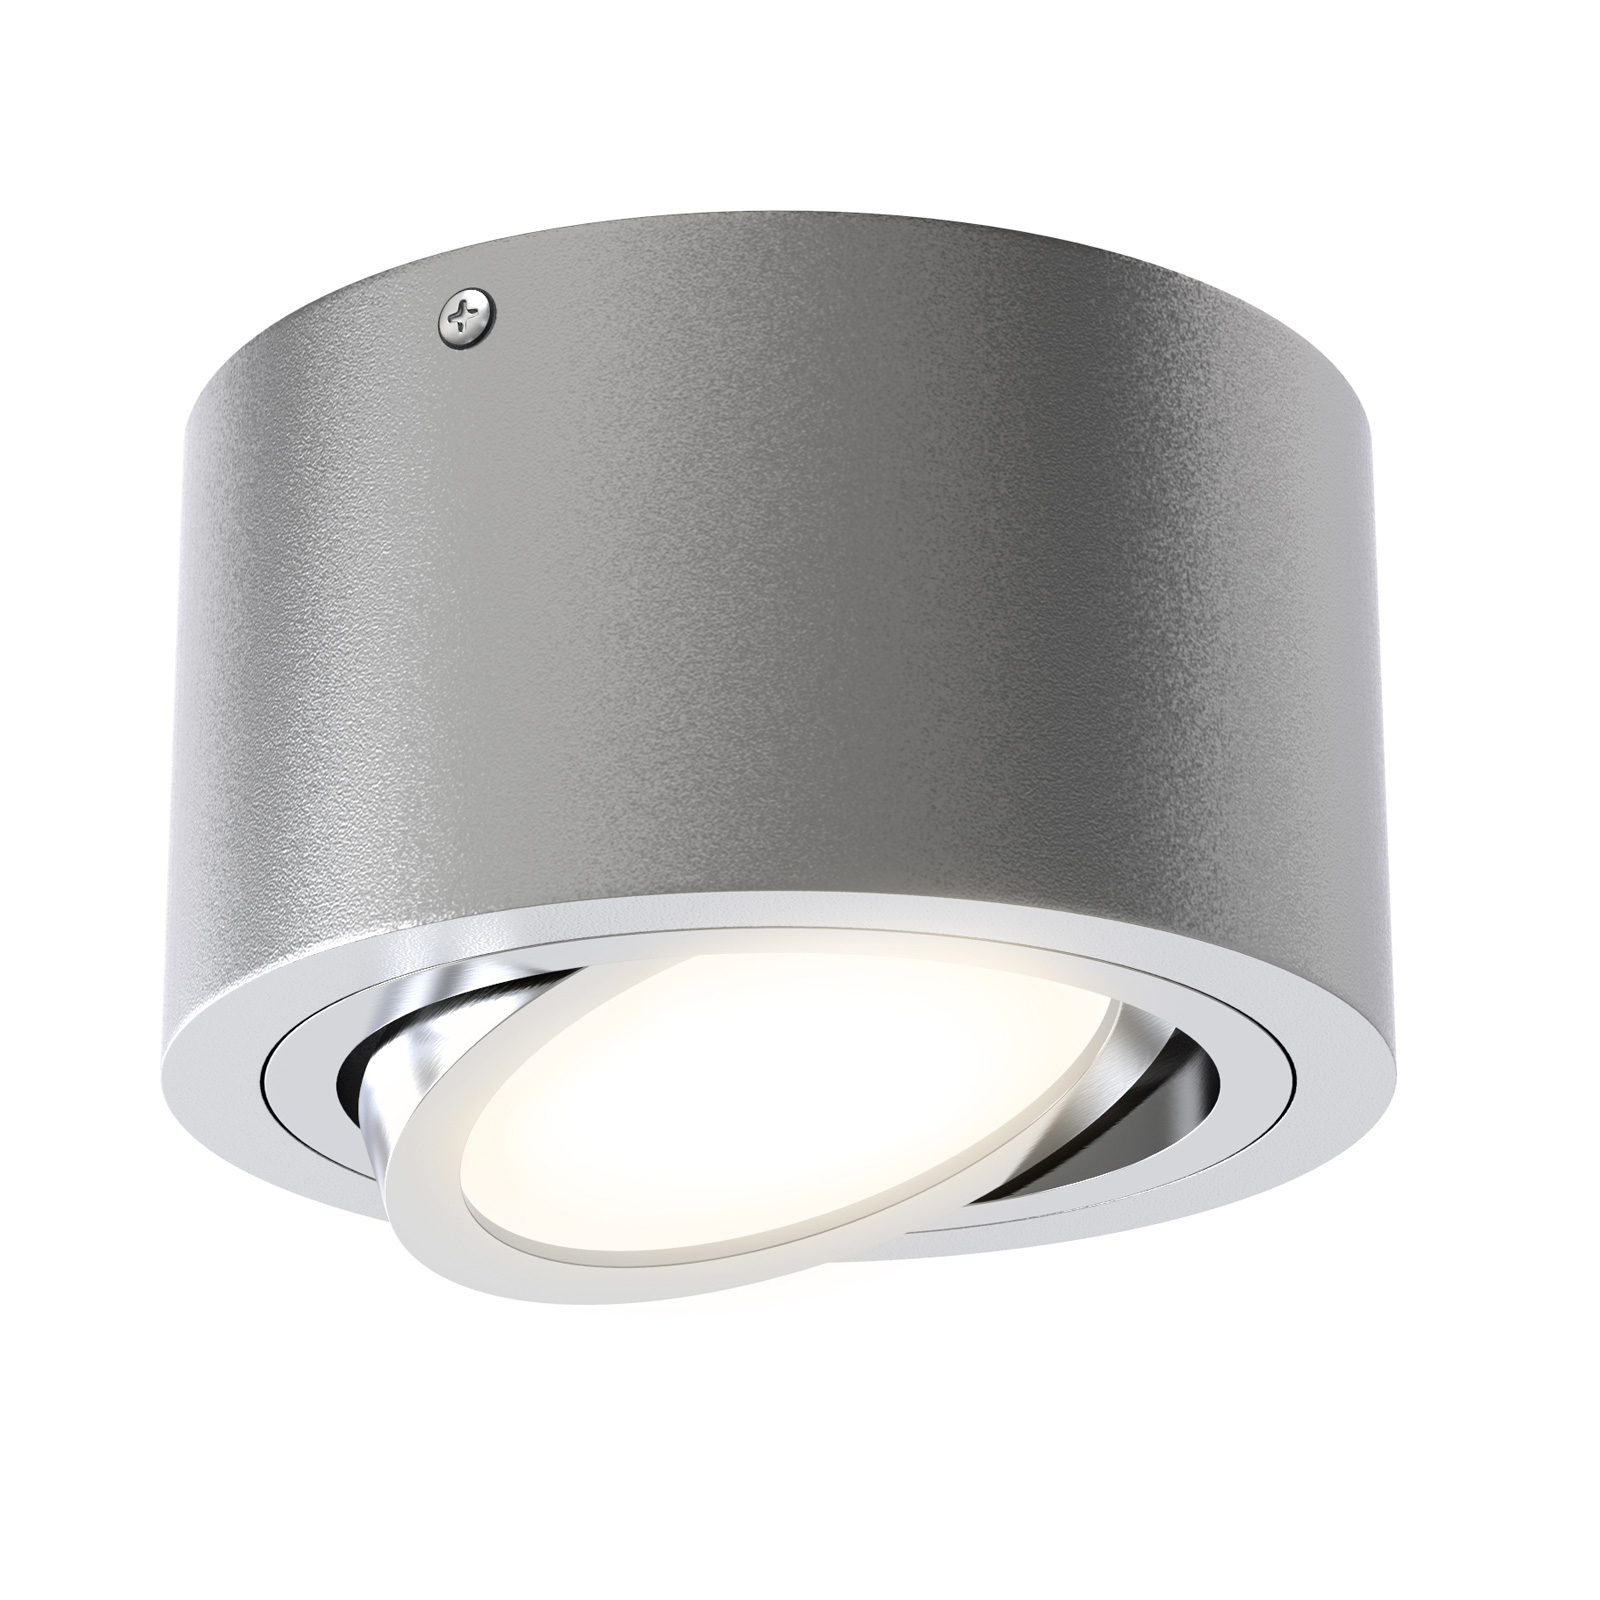 LED-Deckenspot Tube 7121-014 in Silber